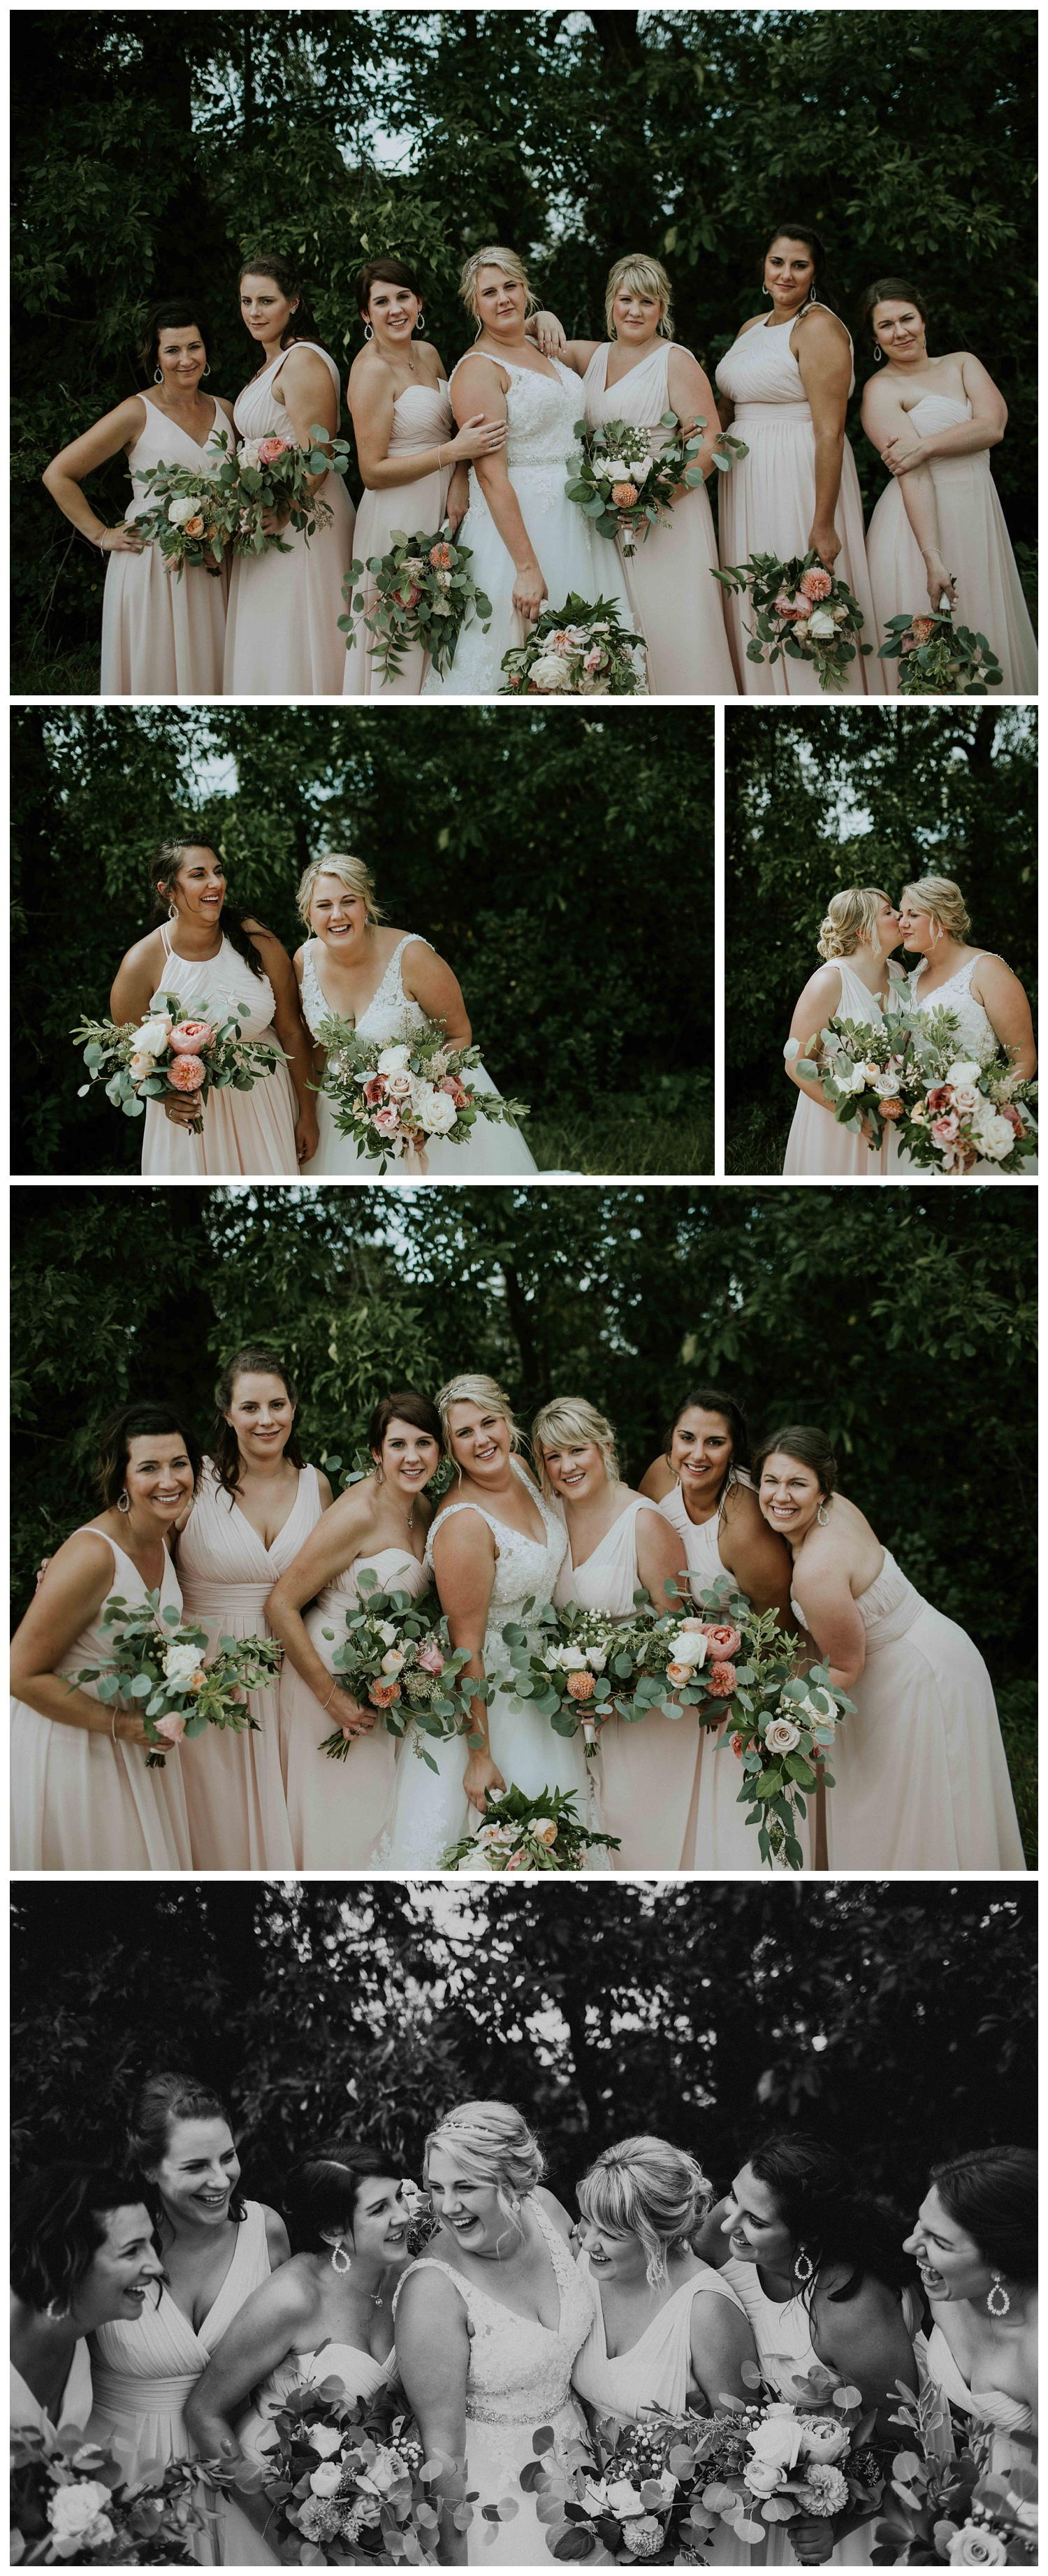 Backyard wedding Central Wisconsin Photographer Chloe Ann Photography_0016.jpg